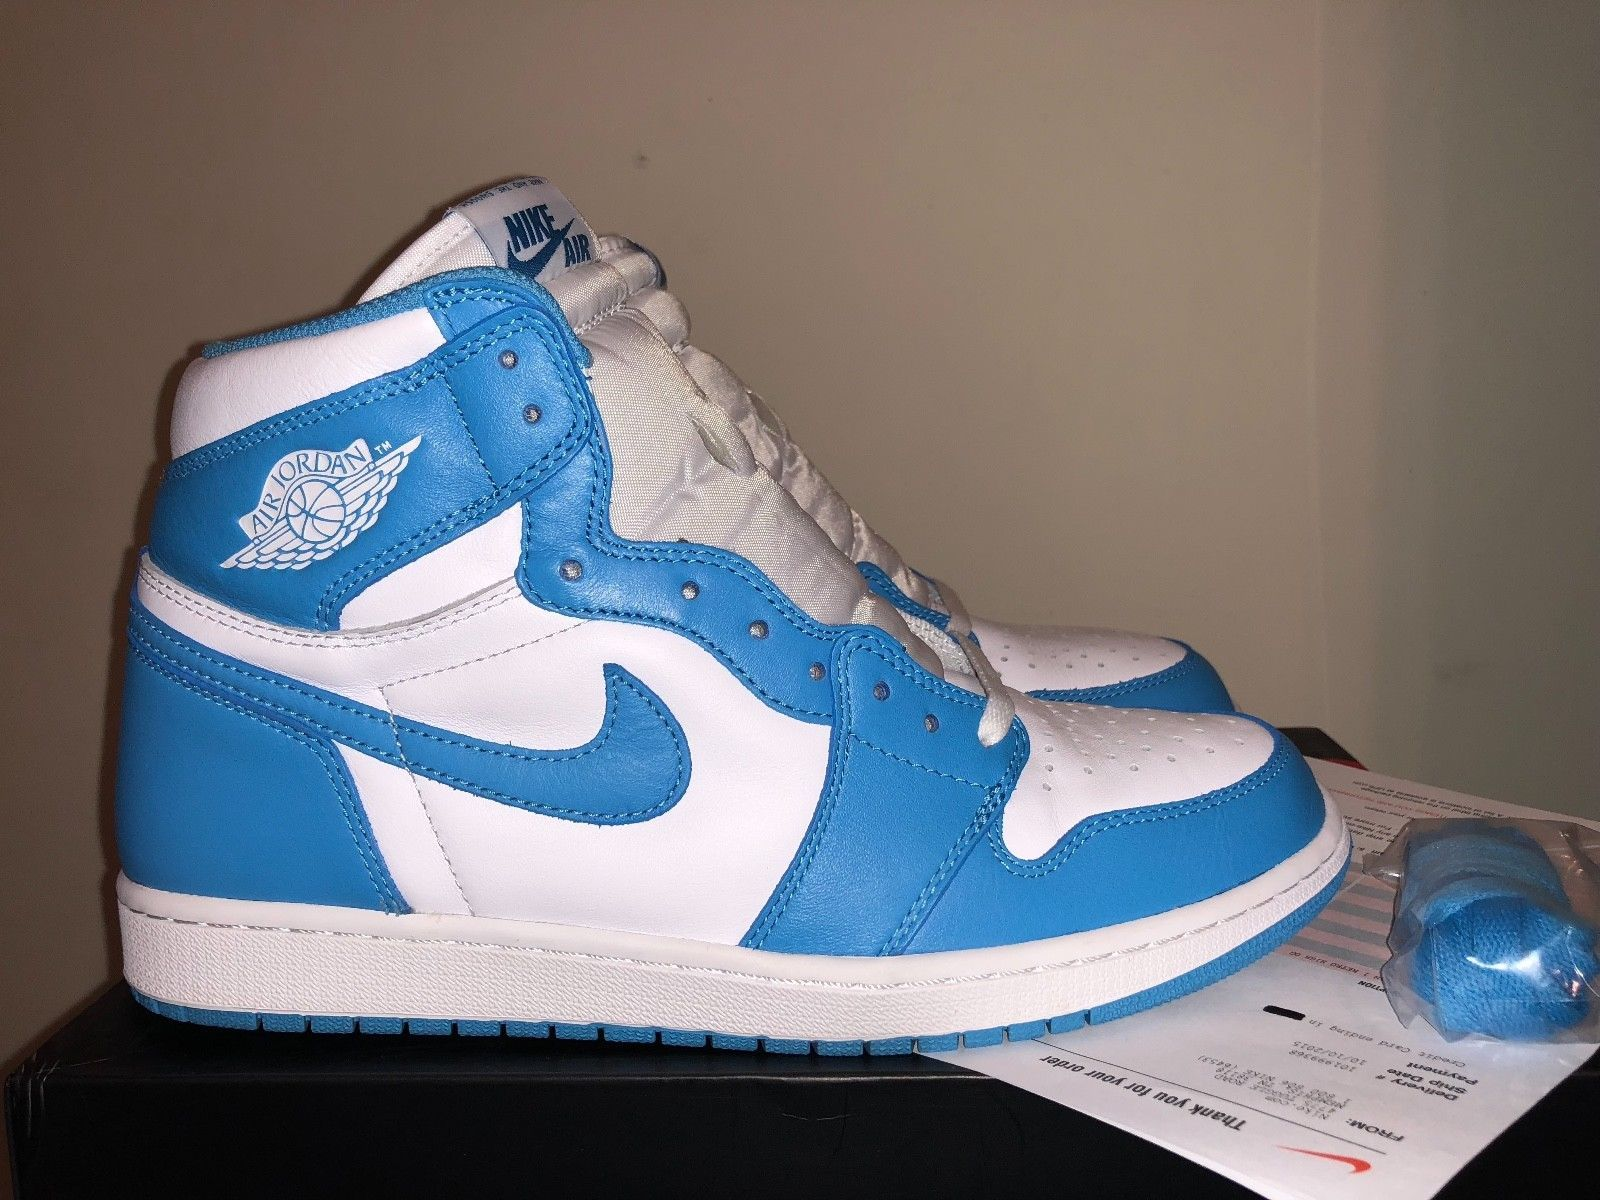 e35d5768115e 2015 Nike Air Jordan 1 Retro High OG UNC I Powder Blue White Men s Sz 11  Receipt